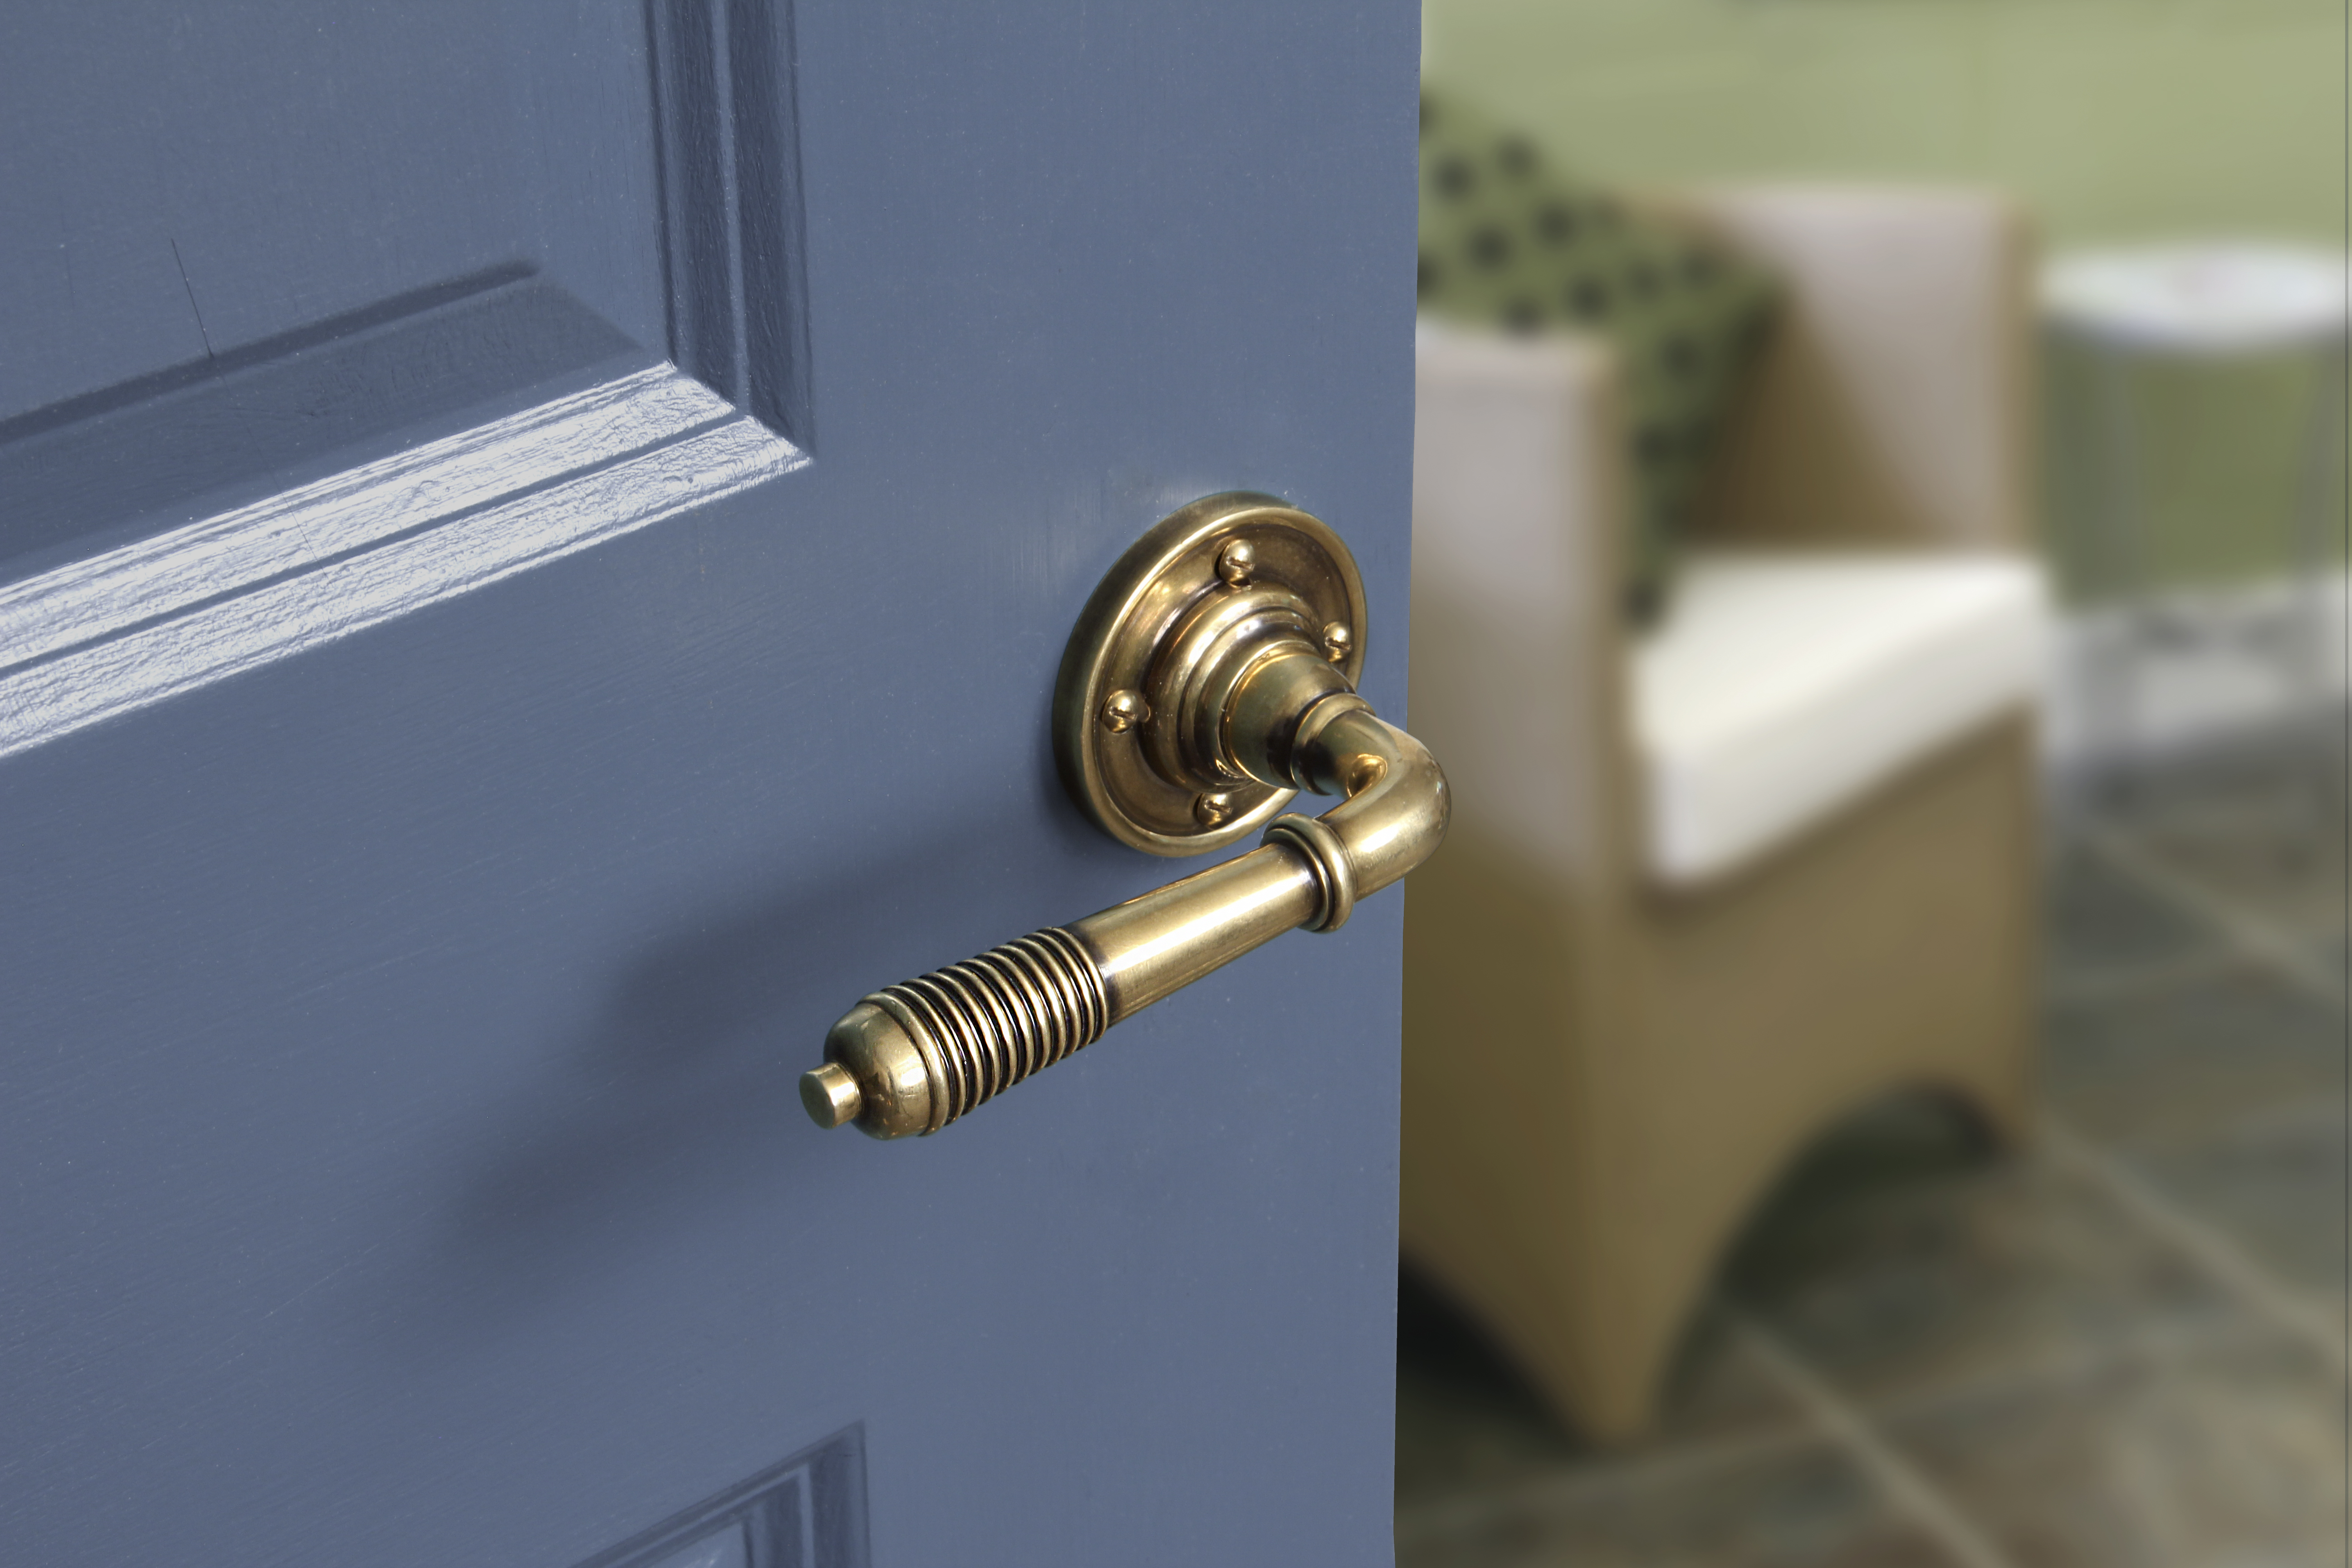 An image of a cylinder brass door handle, fitted onto a navy blue door.